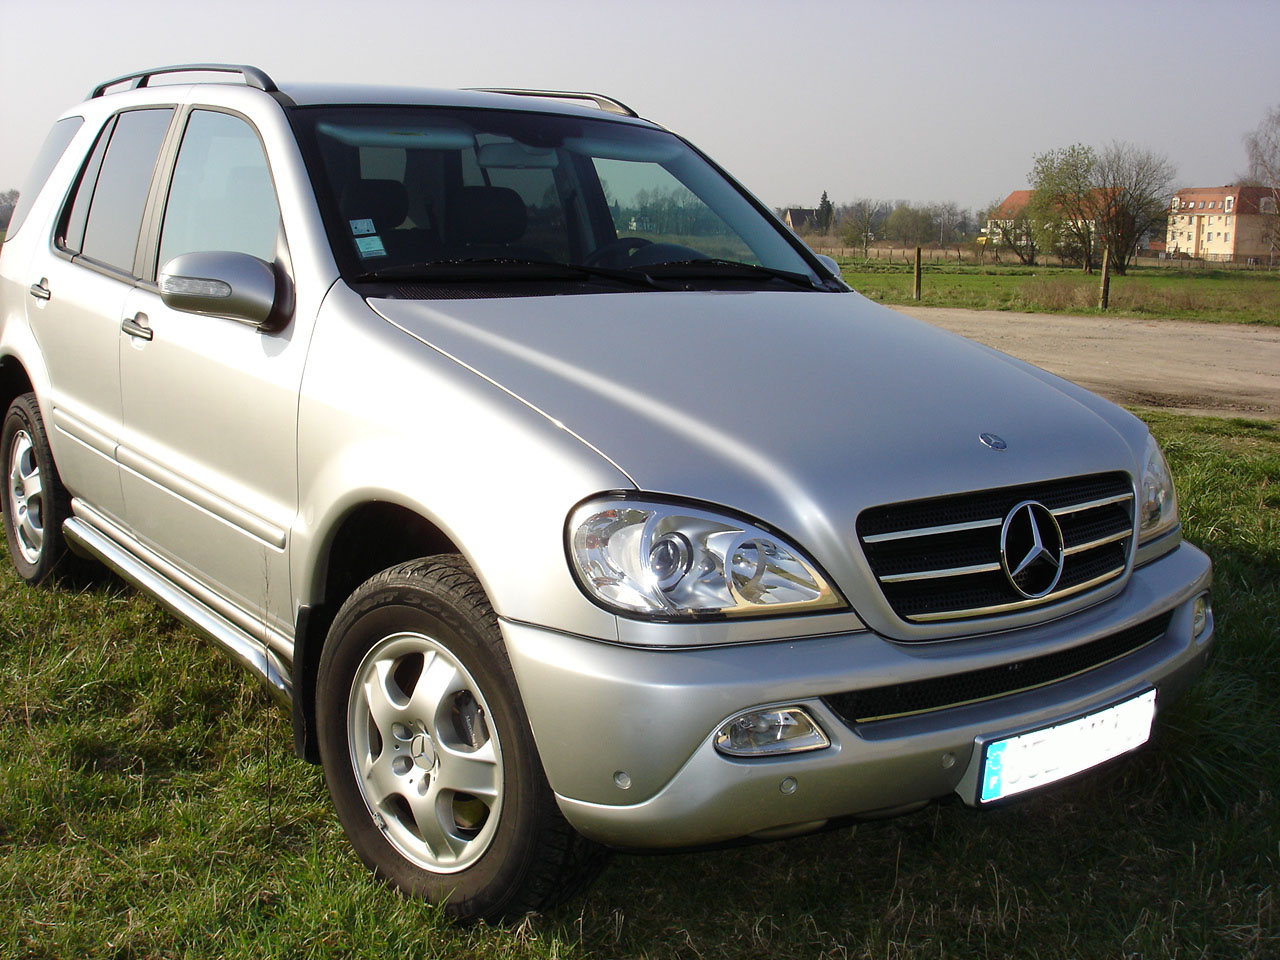 Mercedes - vends mercedes ml270 cdi phase 2